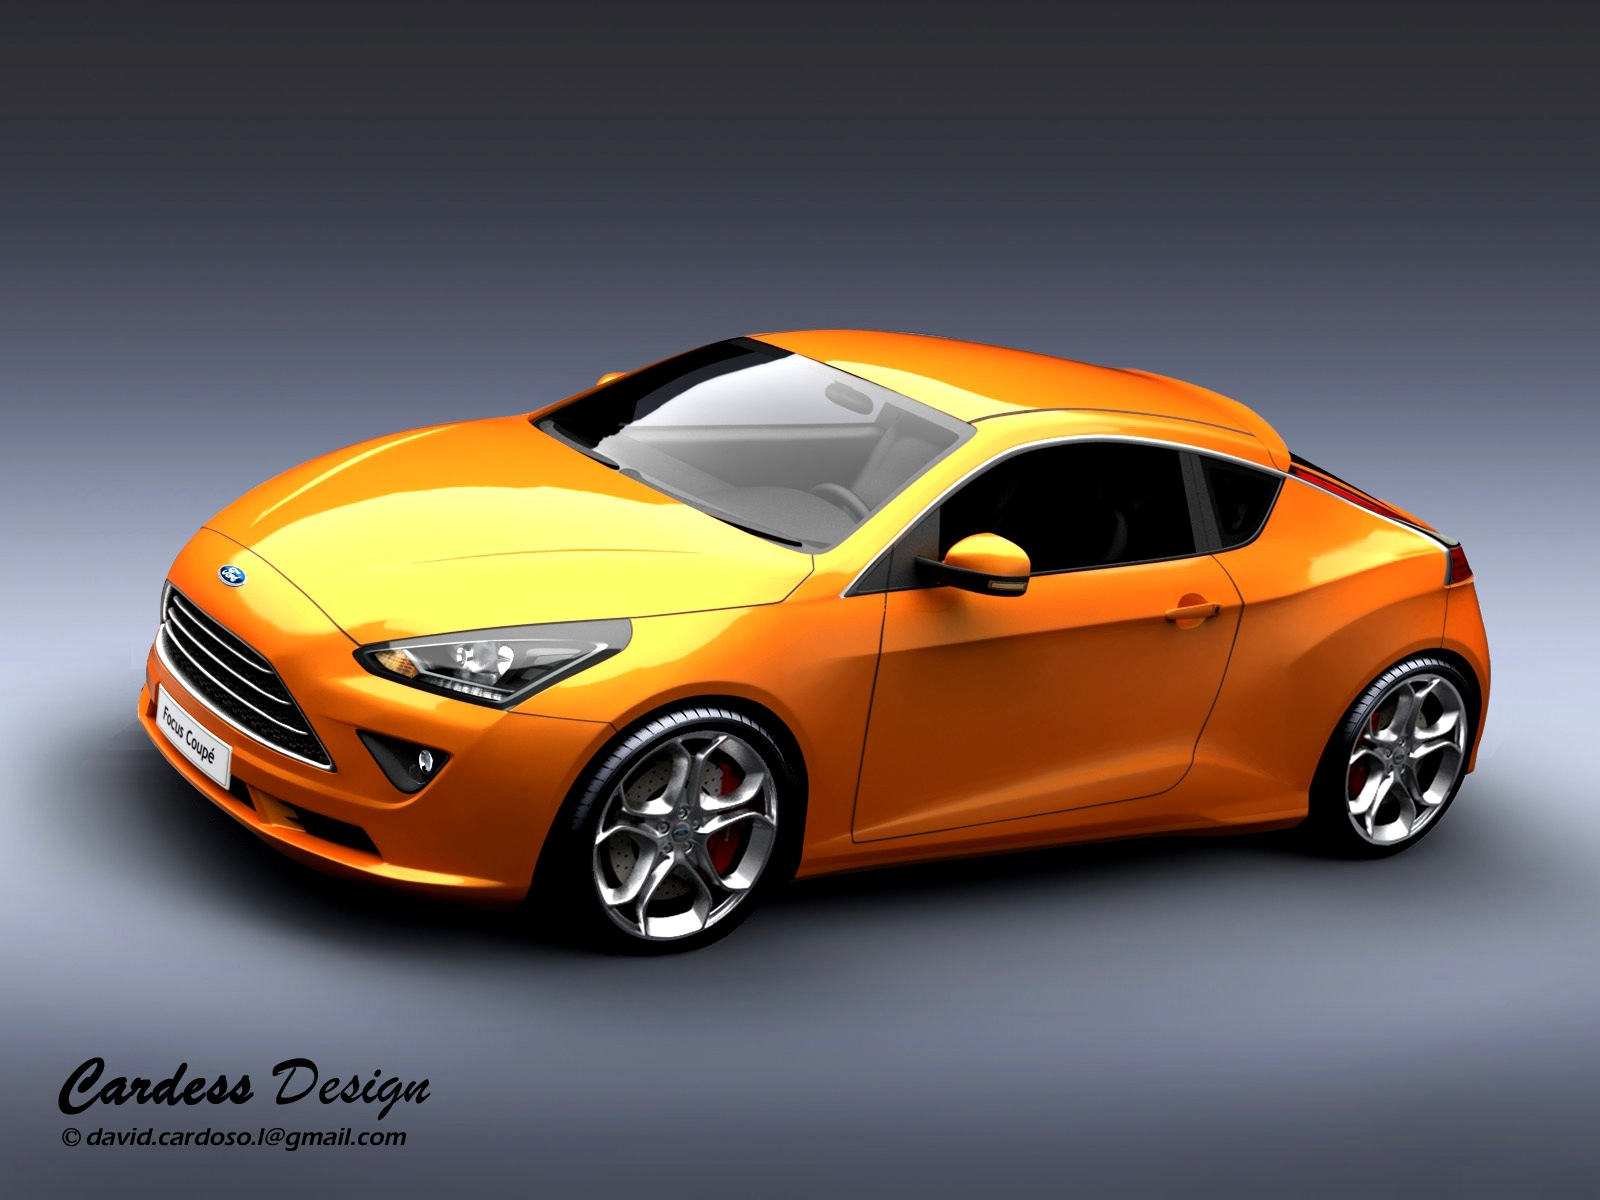 Ford cougar 2014 photo - 4